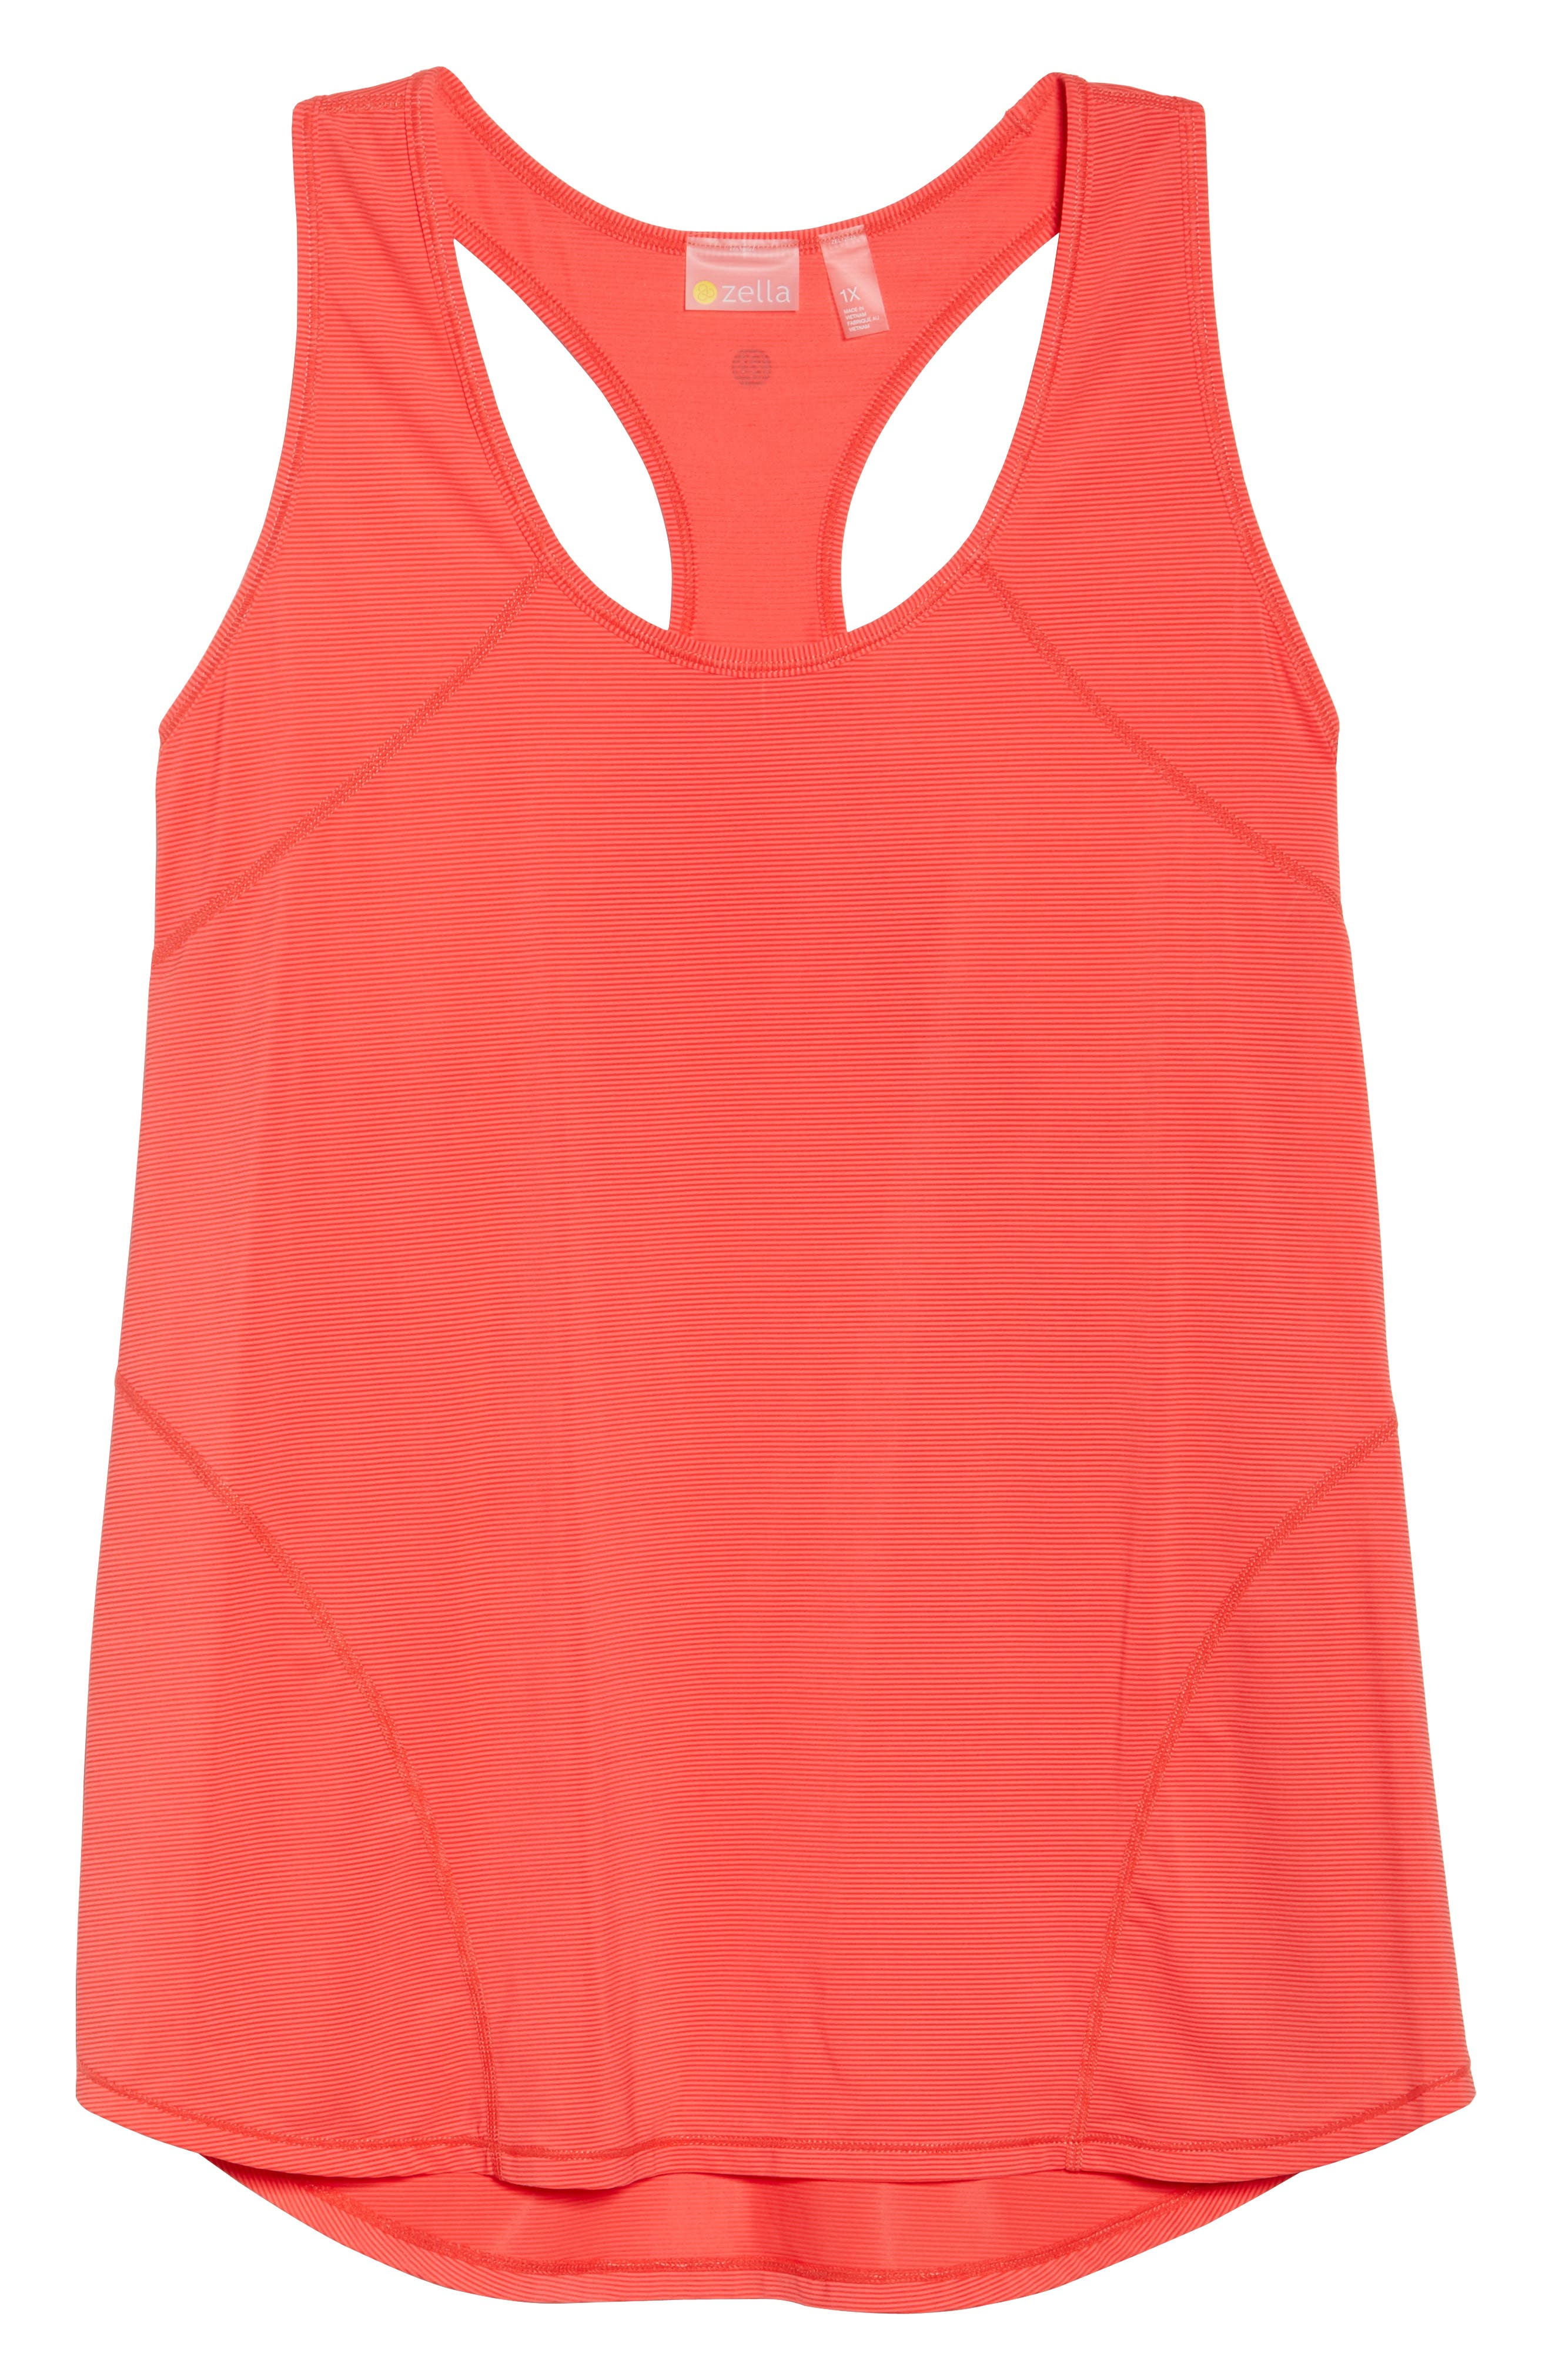 Pace Tank,                             Alternate thumbnail 5, color,                             Red Hibiscus